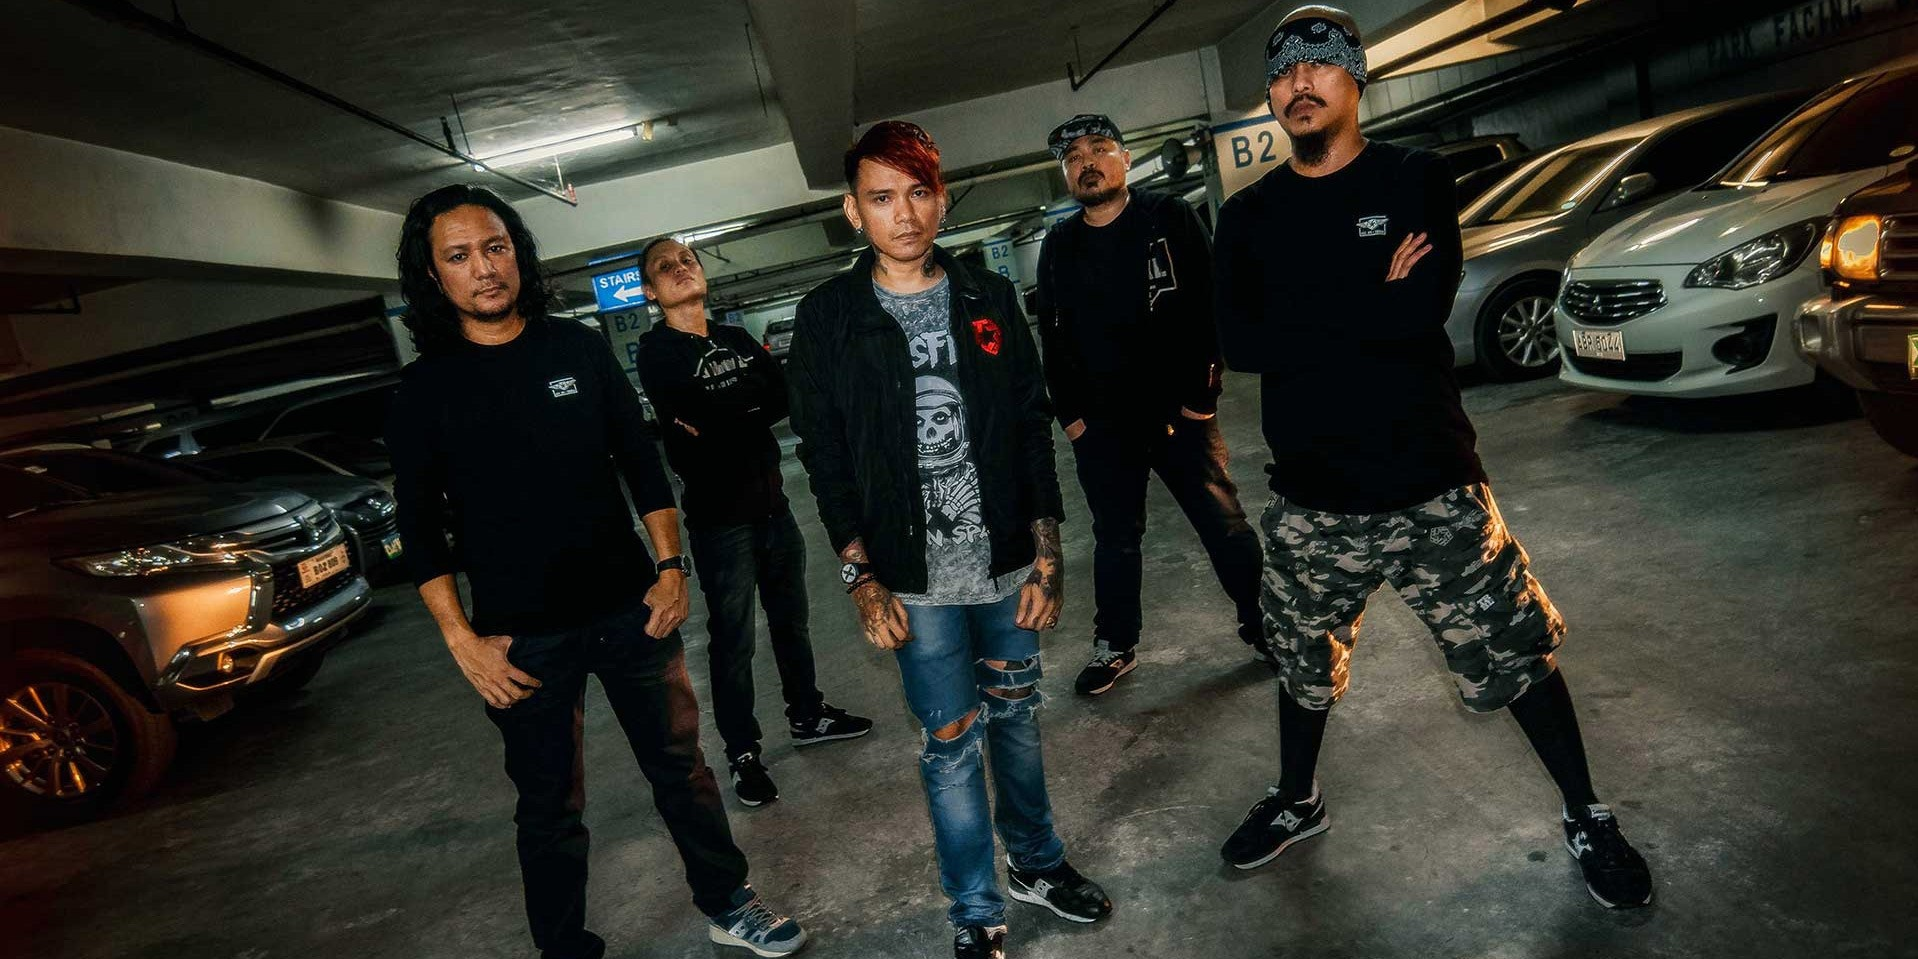 Valley Of Chrome to perform at Indonesia's Hammersonic 2018